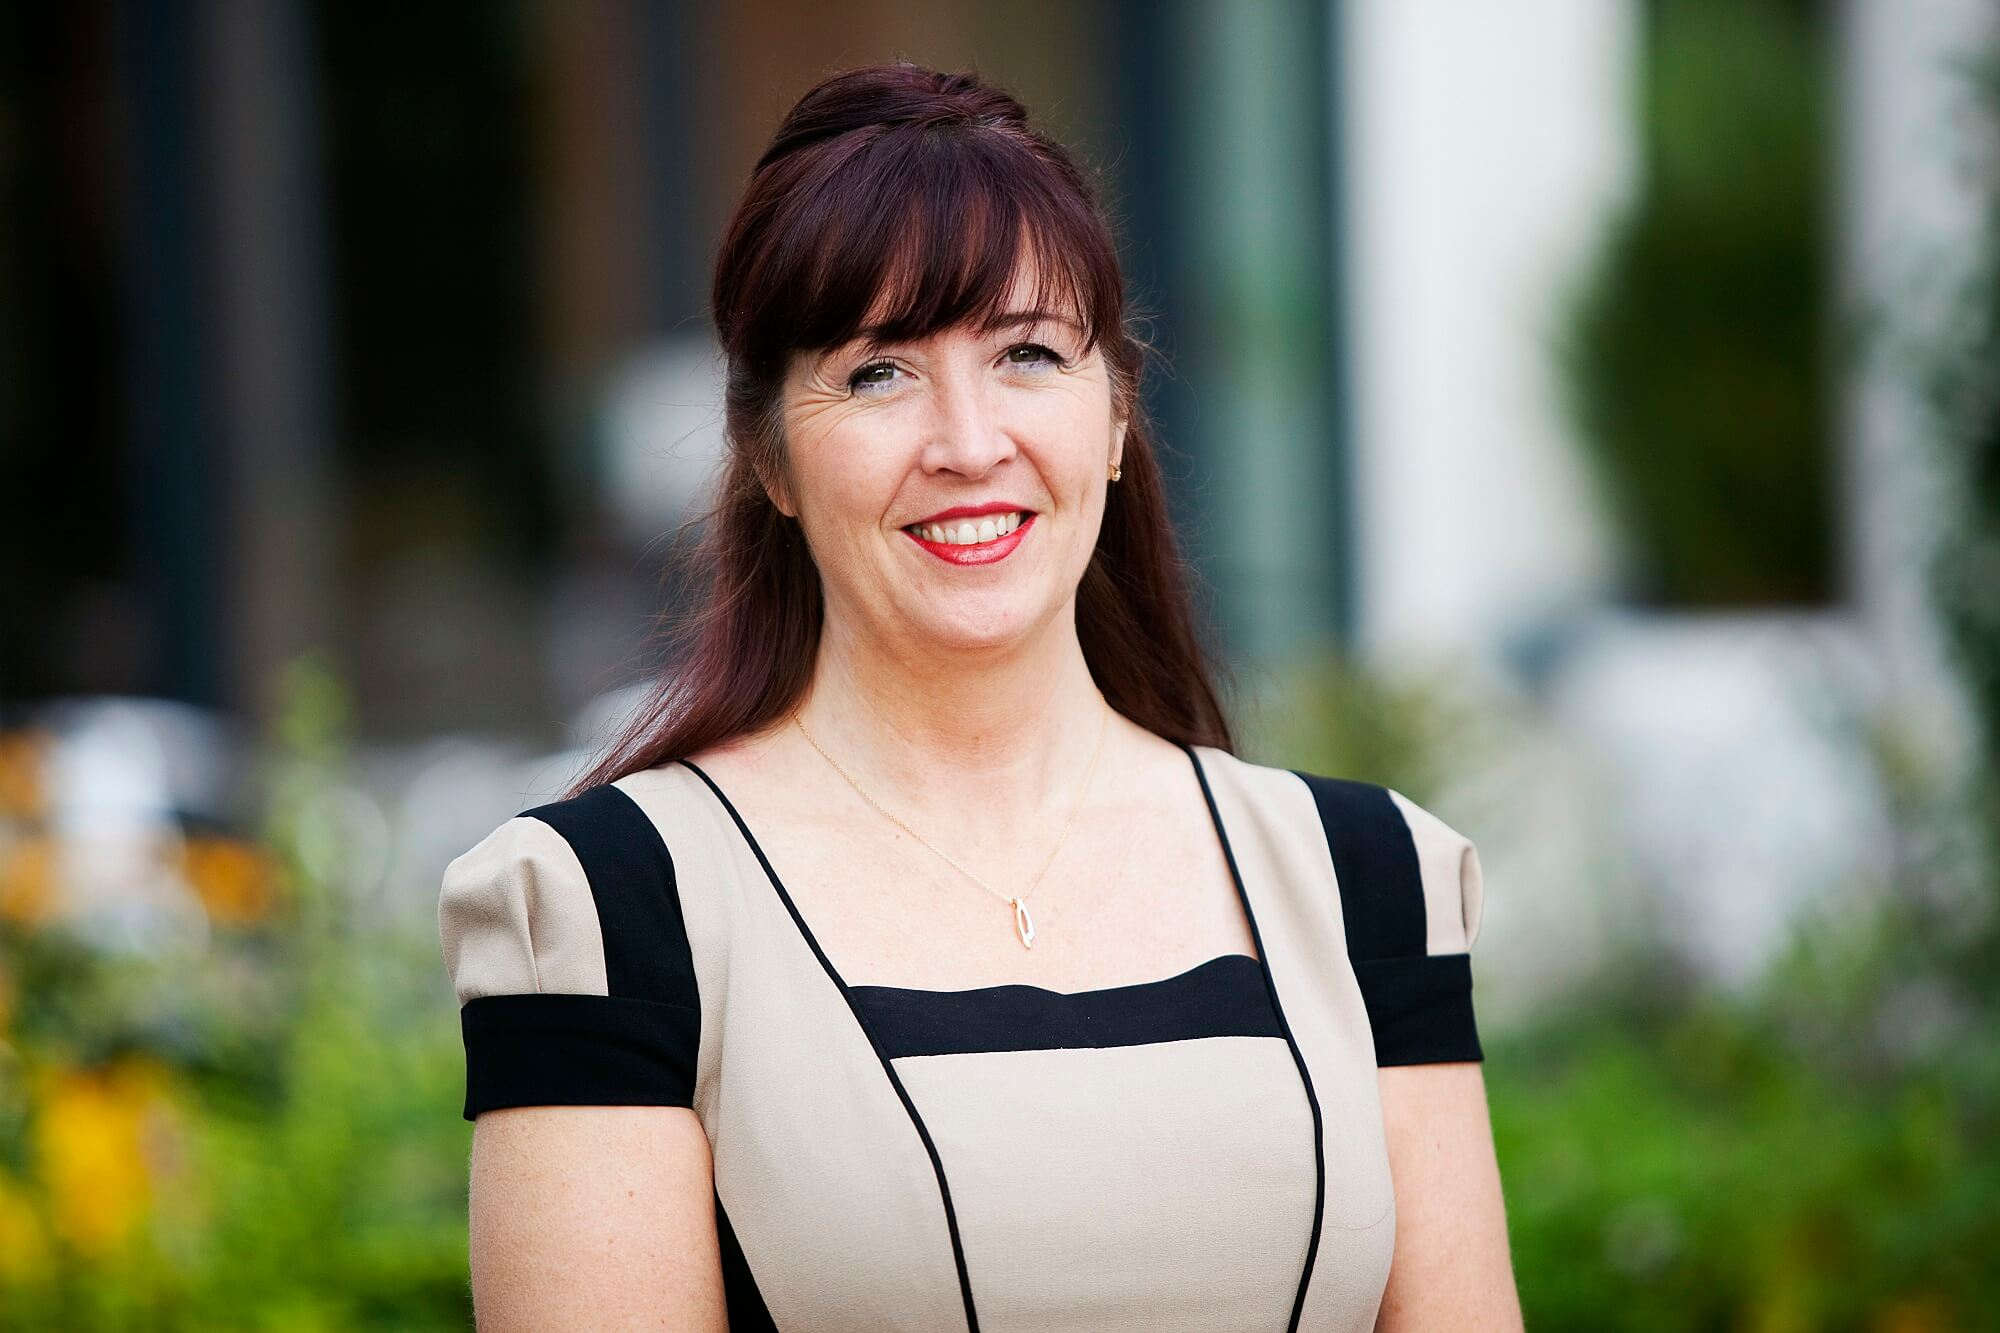 Paula Shaw, Academic Manager at UDOL